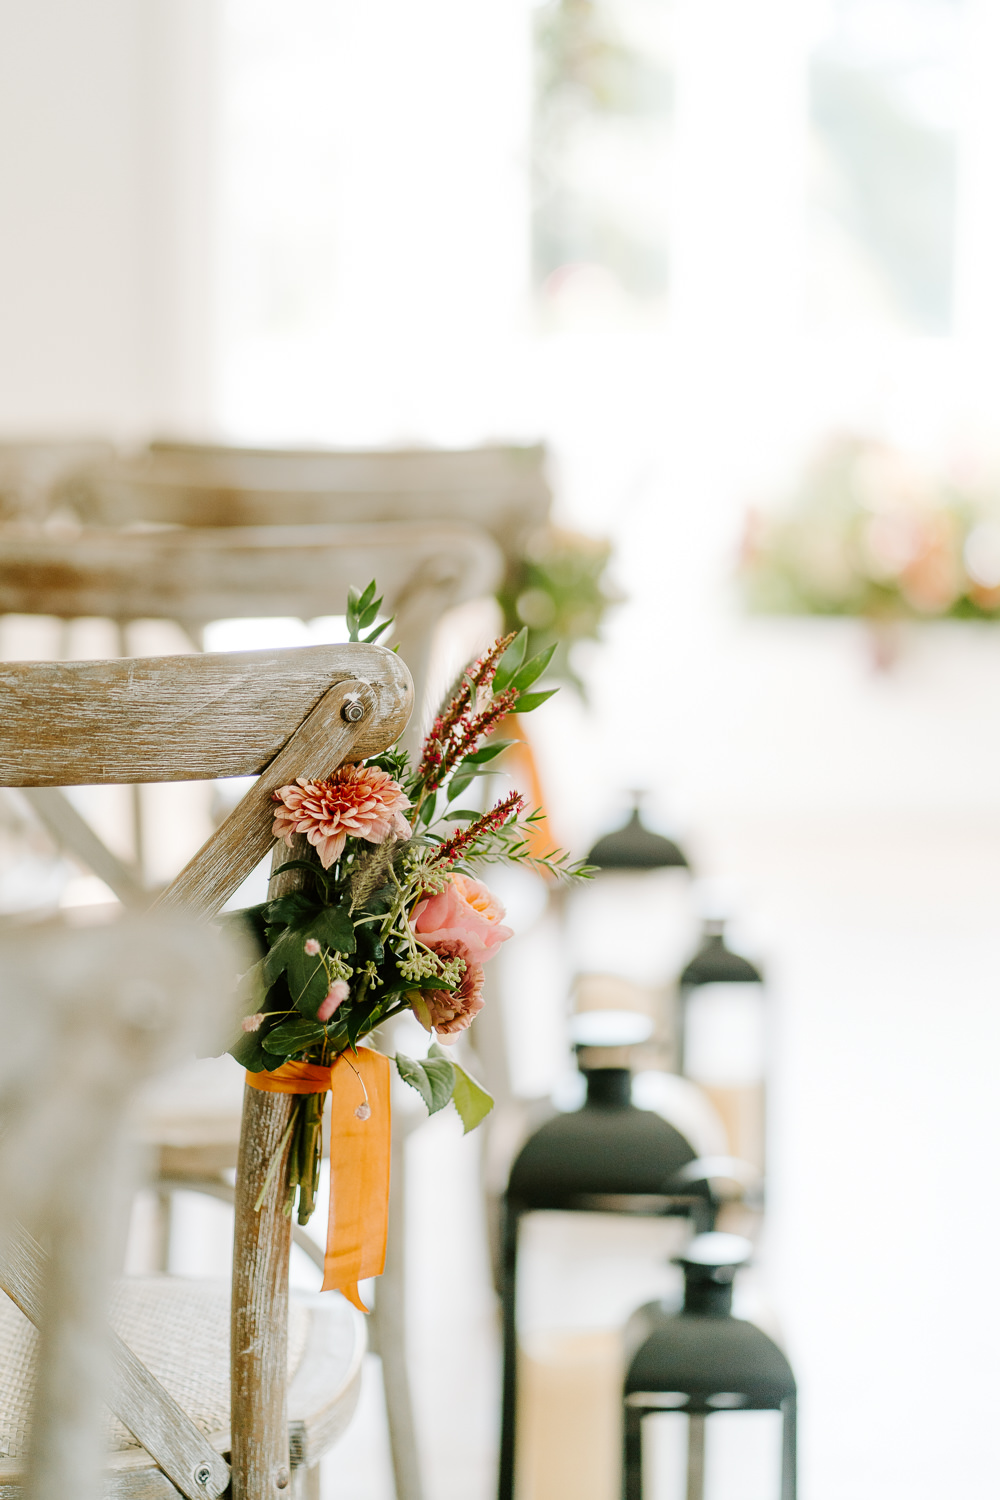 Pew End Aisle Flowers Chairs Contemporary Wedding Ideas Chloe Ely Photography